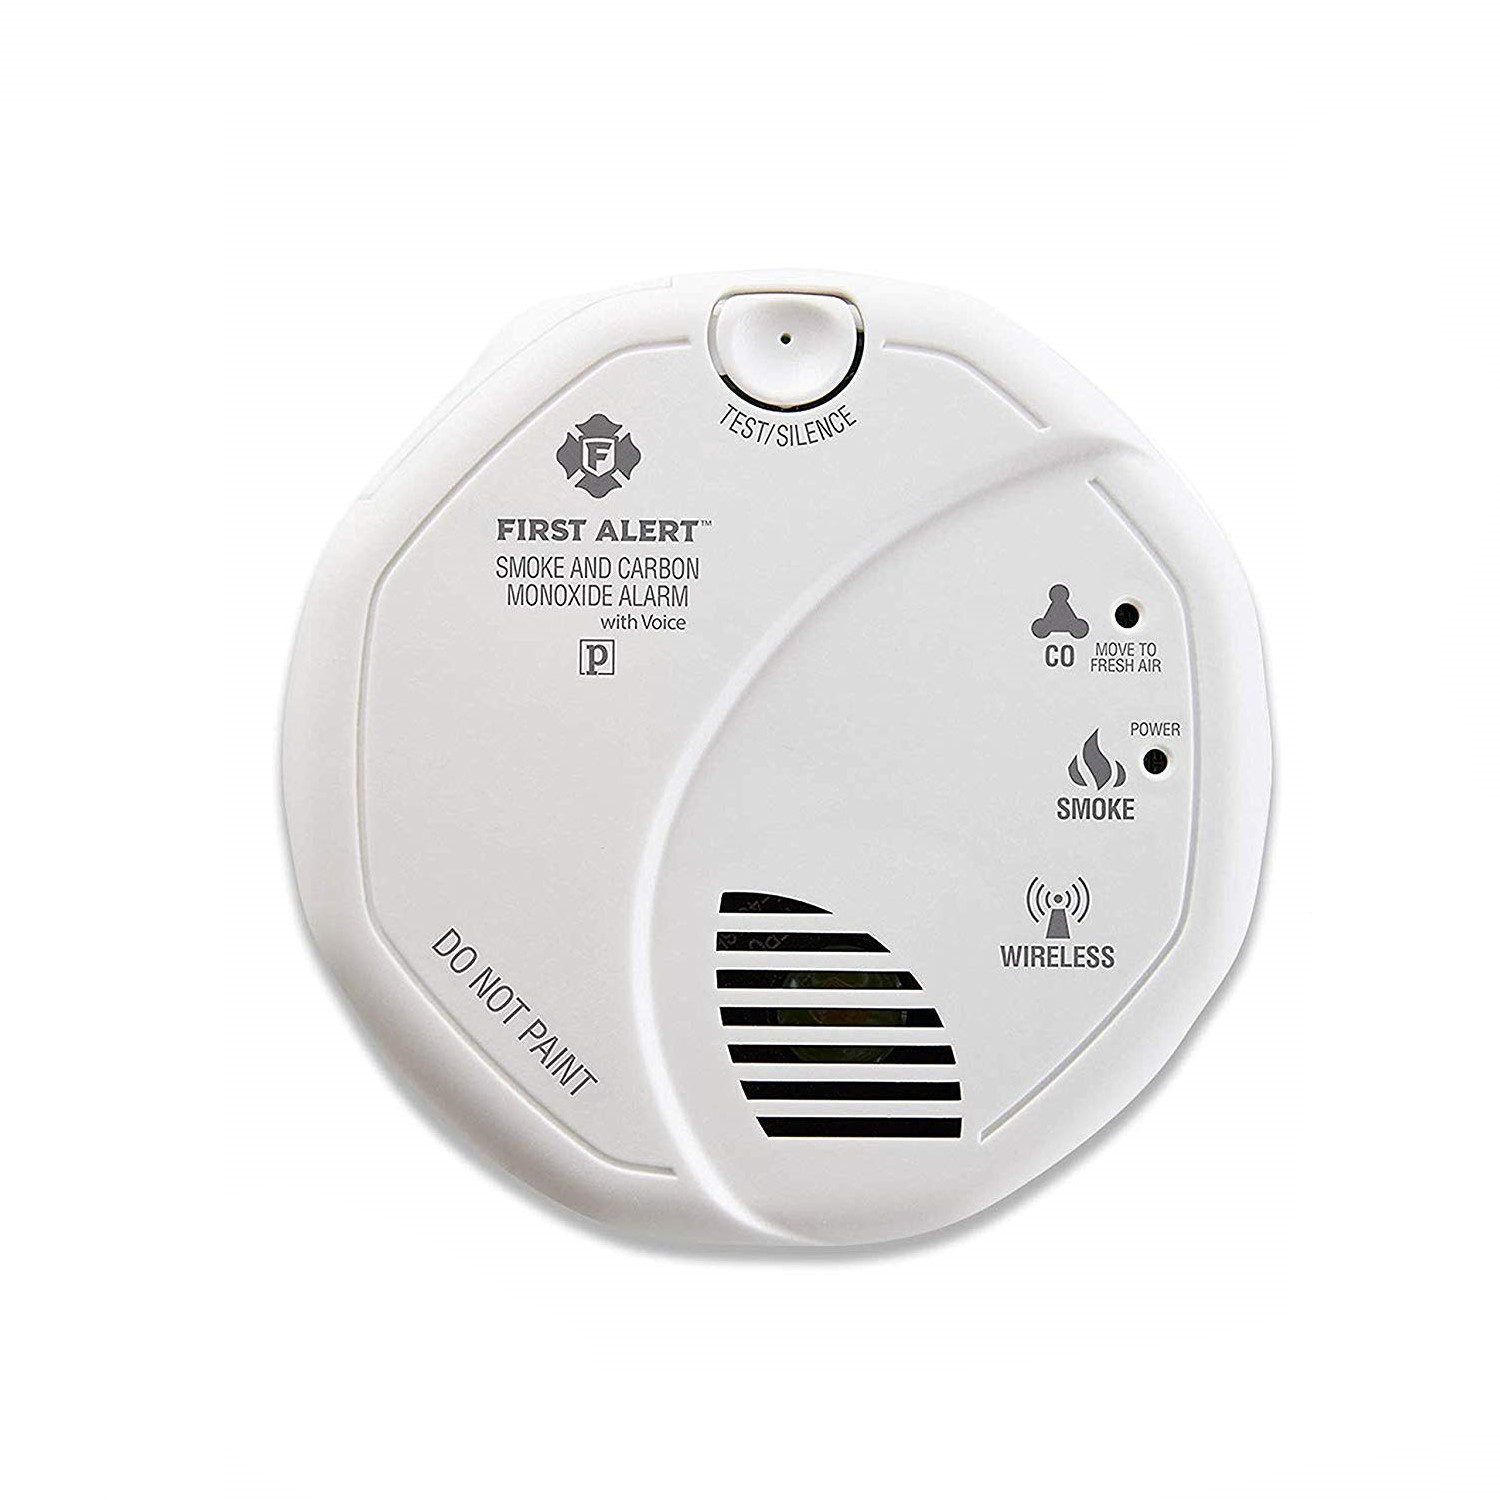 7 Best Smoke Detectors Aug 2020 Reviews Buying Guide